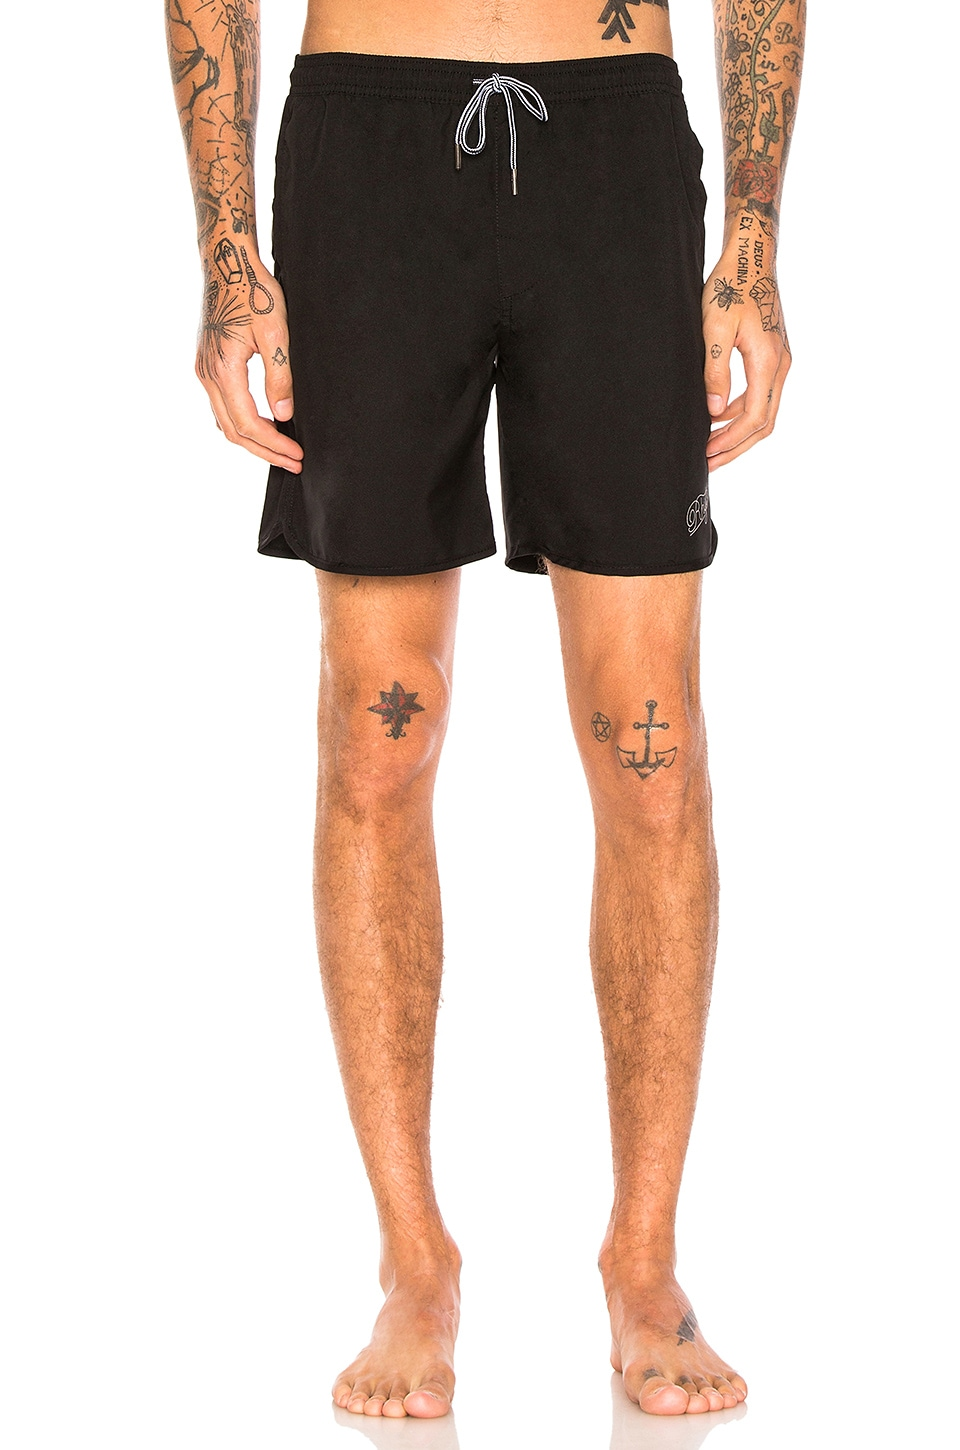 The Black Beach Short by Rhythm